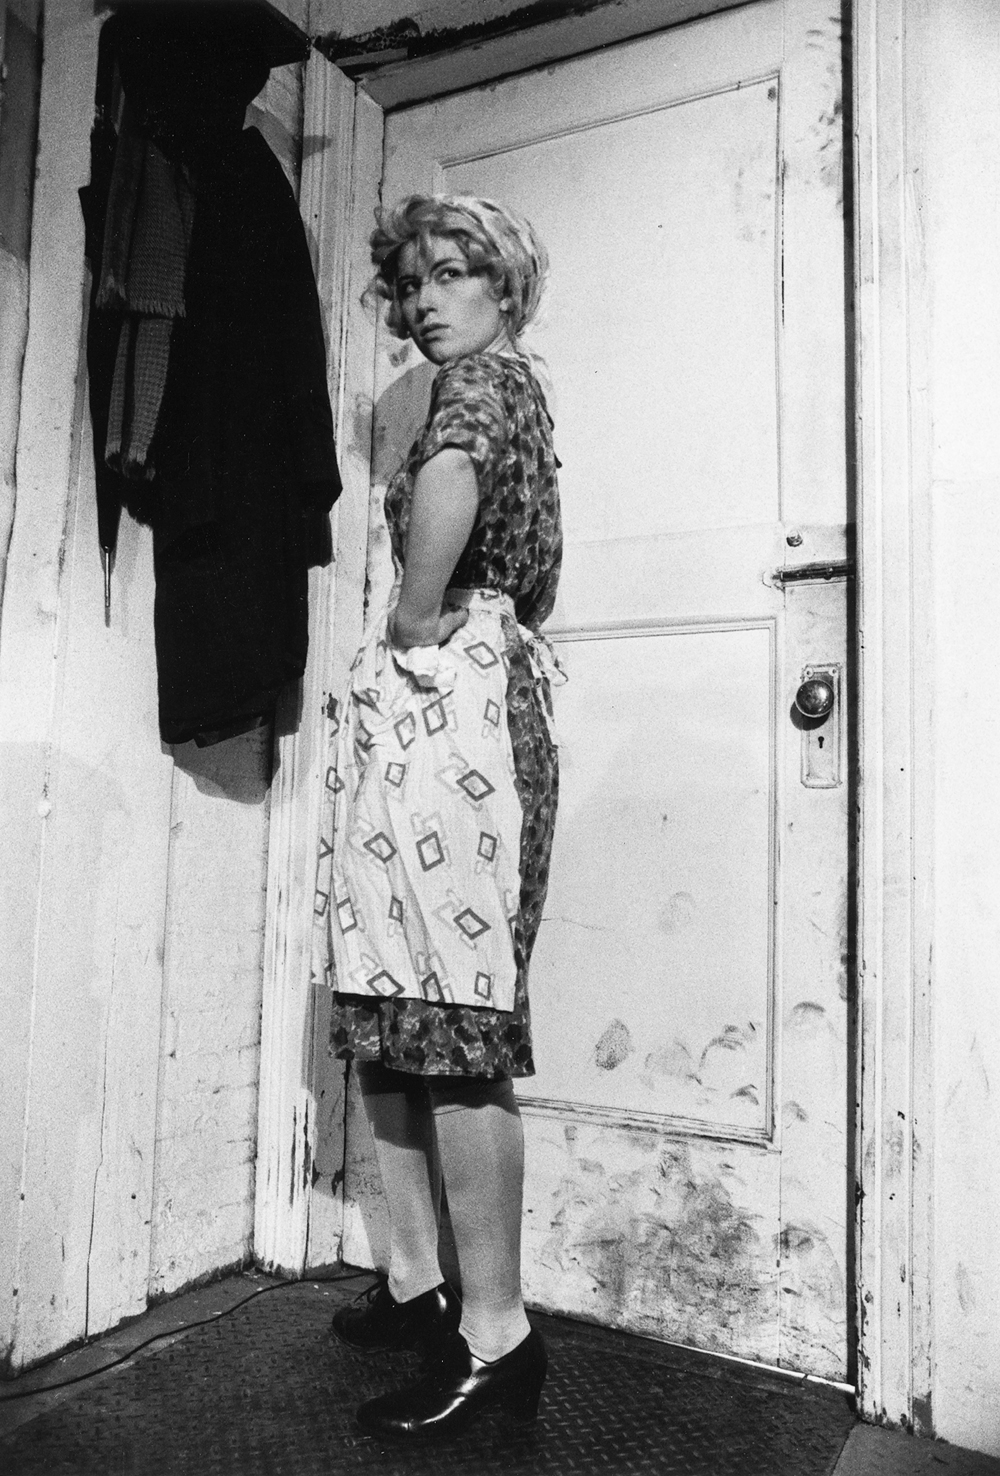 Cindy sherman s photograph untitled film